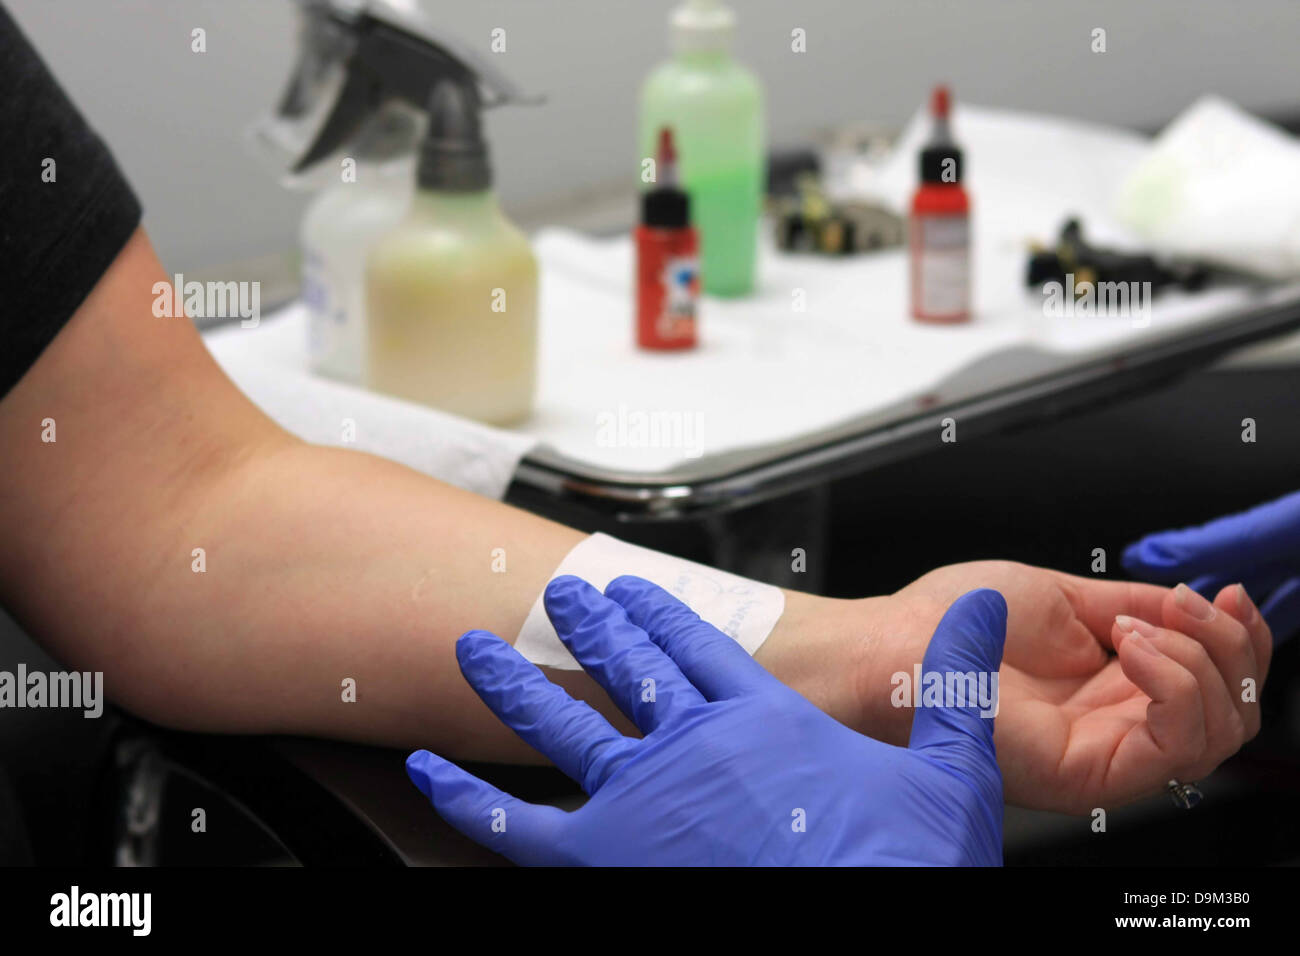 person being prepared with stencil to get a tattoo on the left wrist, artist wearing blue gloves, supplies in background, - Stock Image